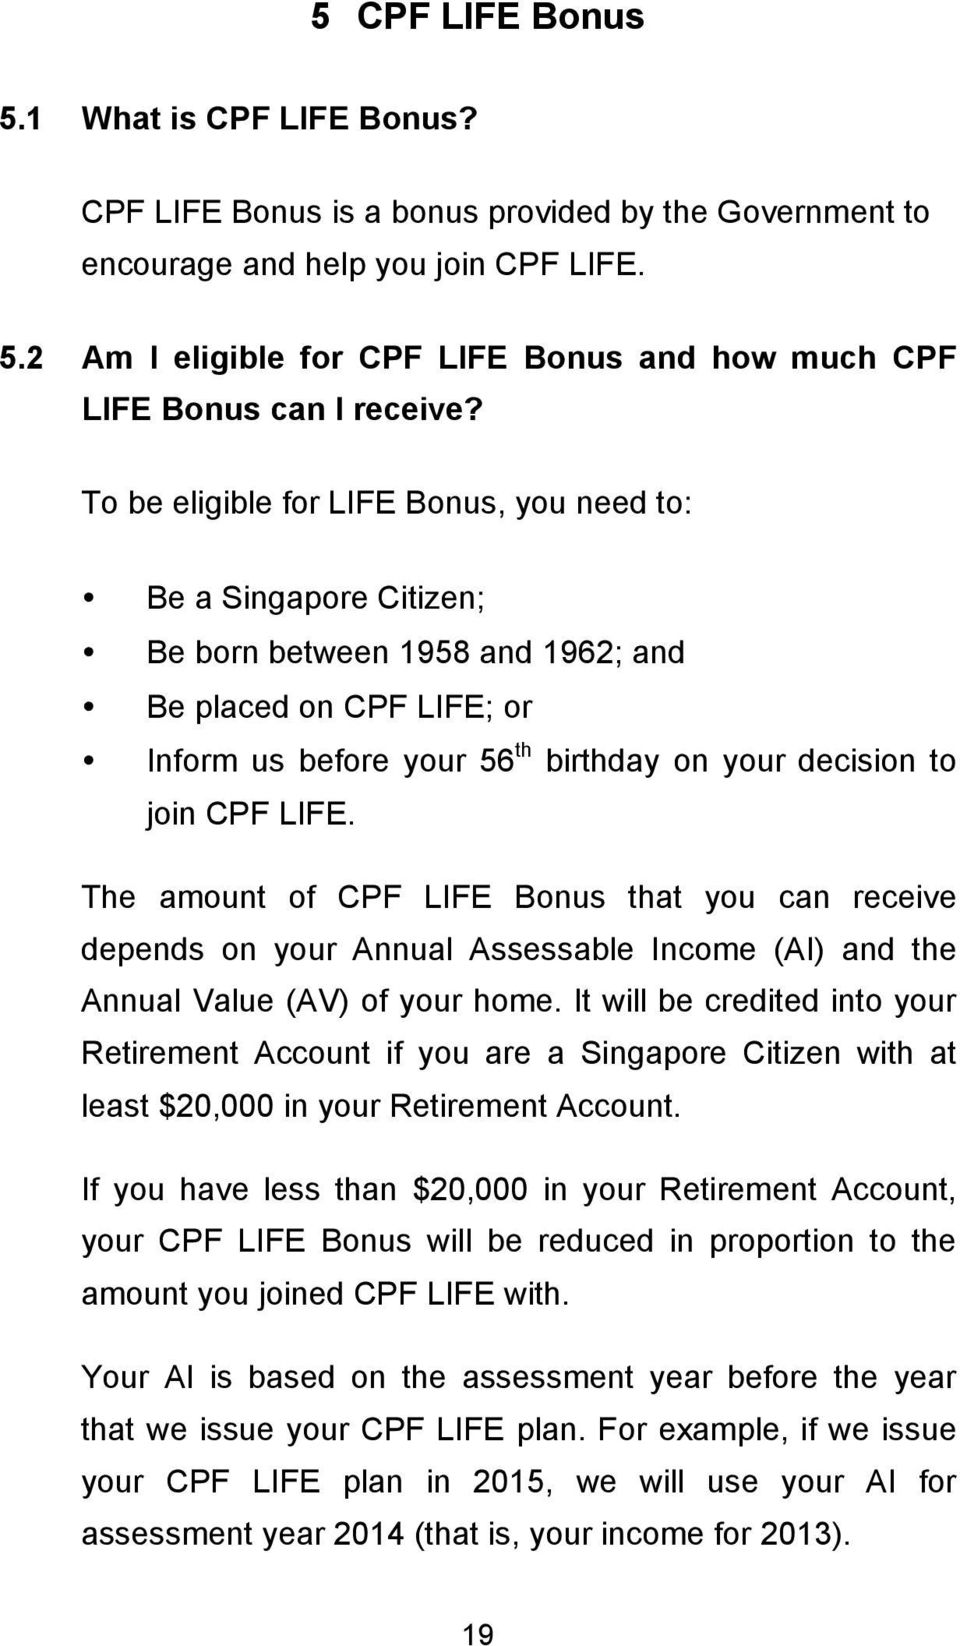 The amount of CPF LIFE Bonus that you can receive depends on your Annual Assessable Income (AI) and the Annual Value (AV) of your home.